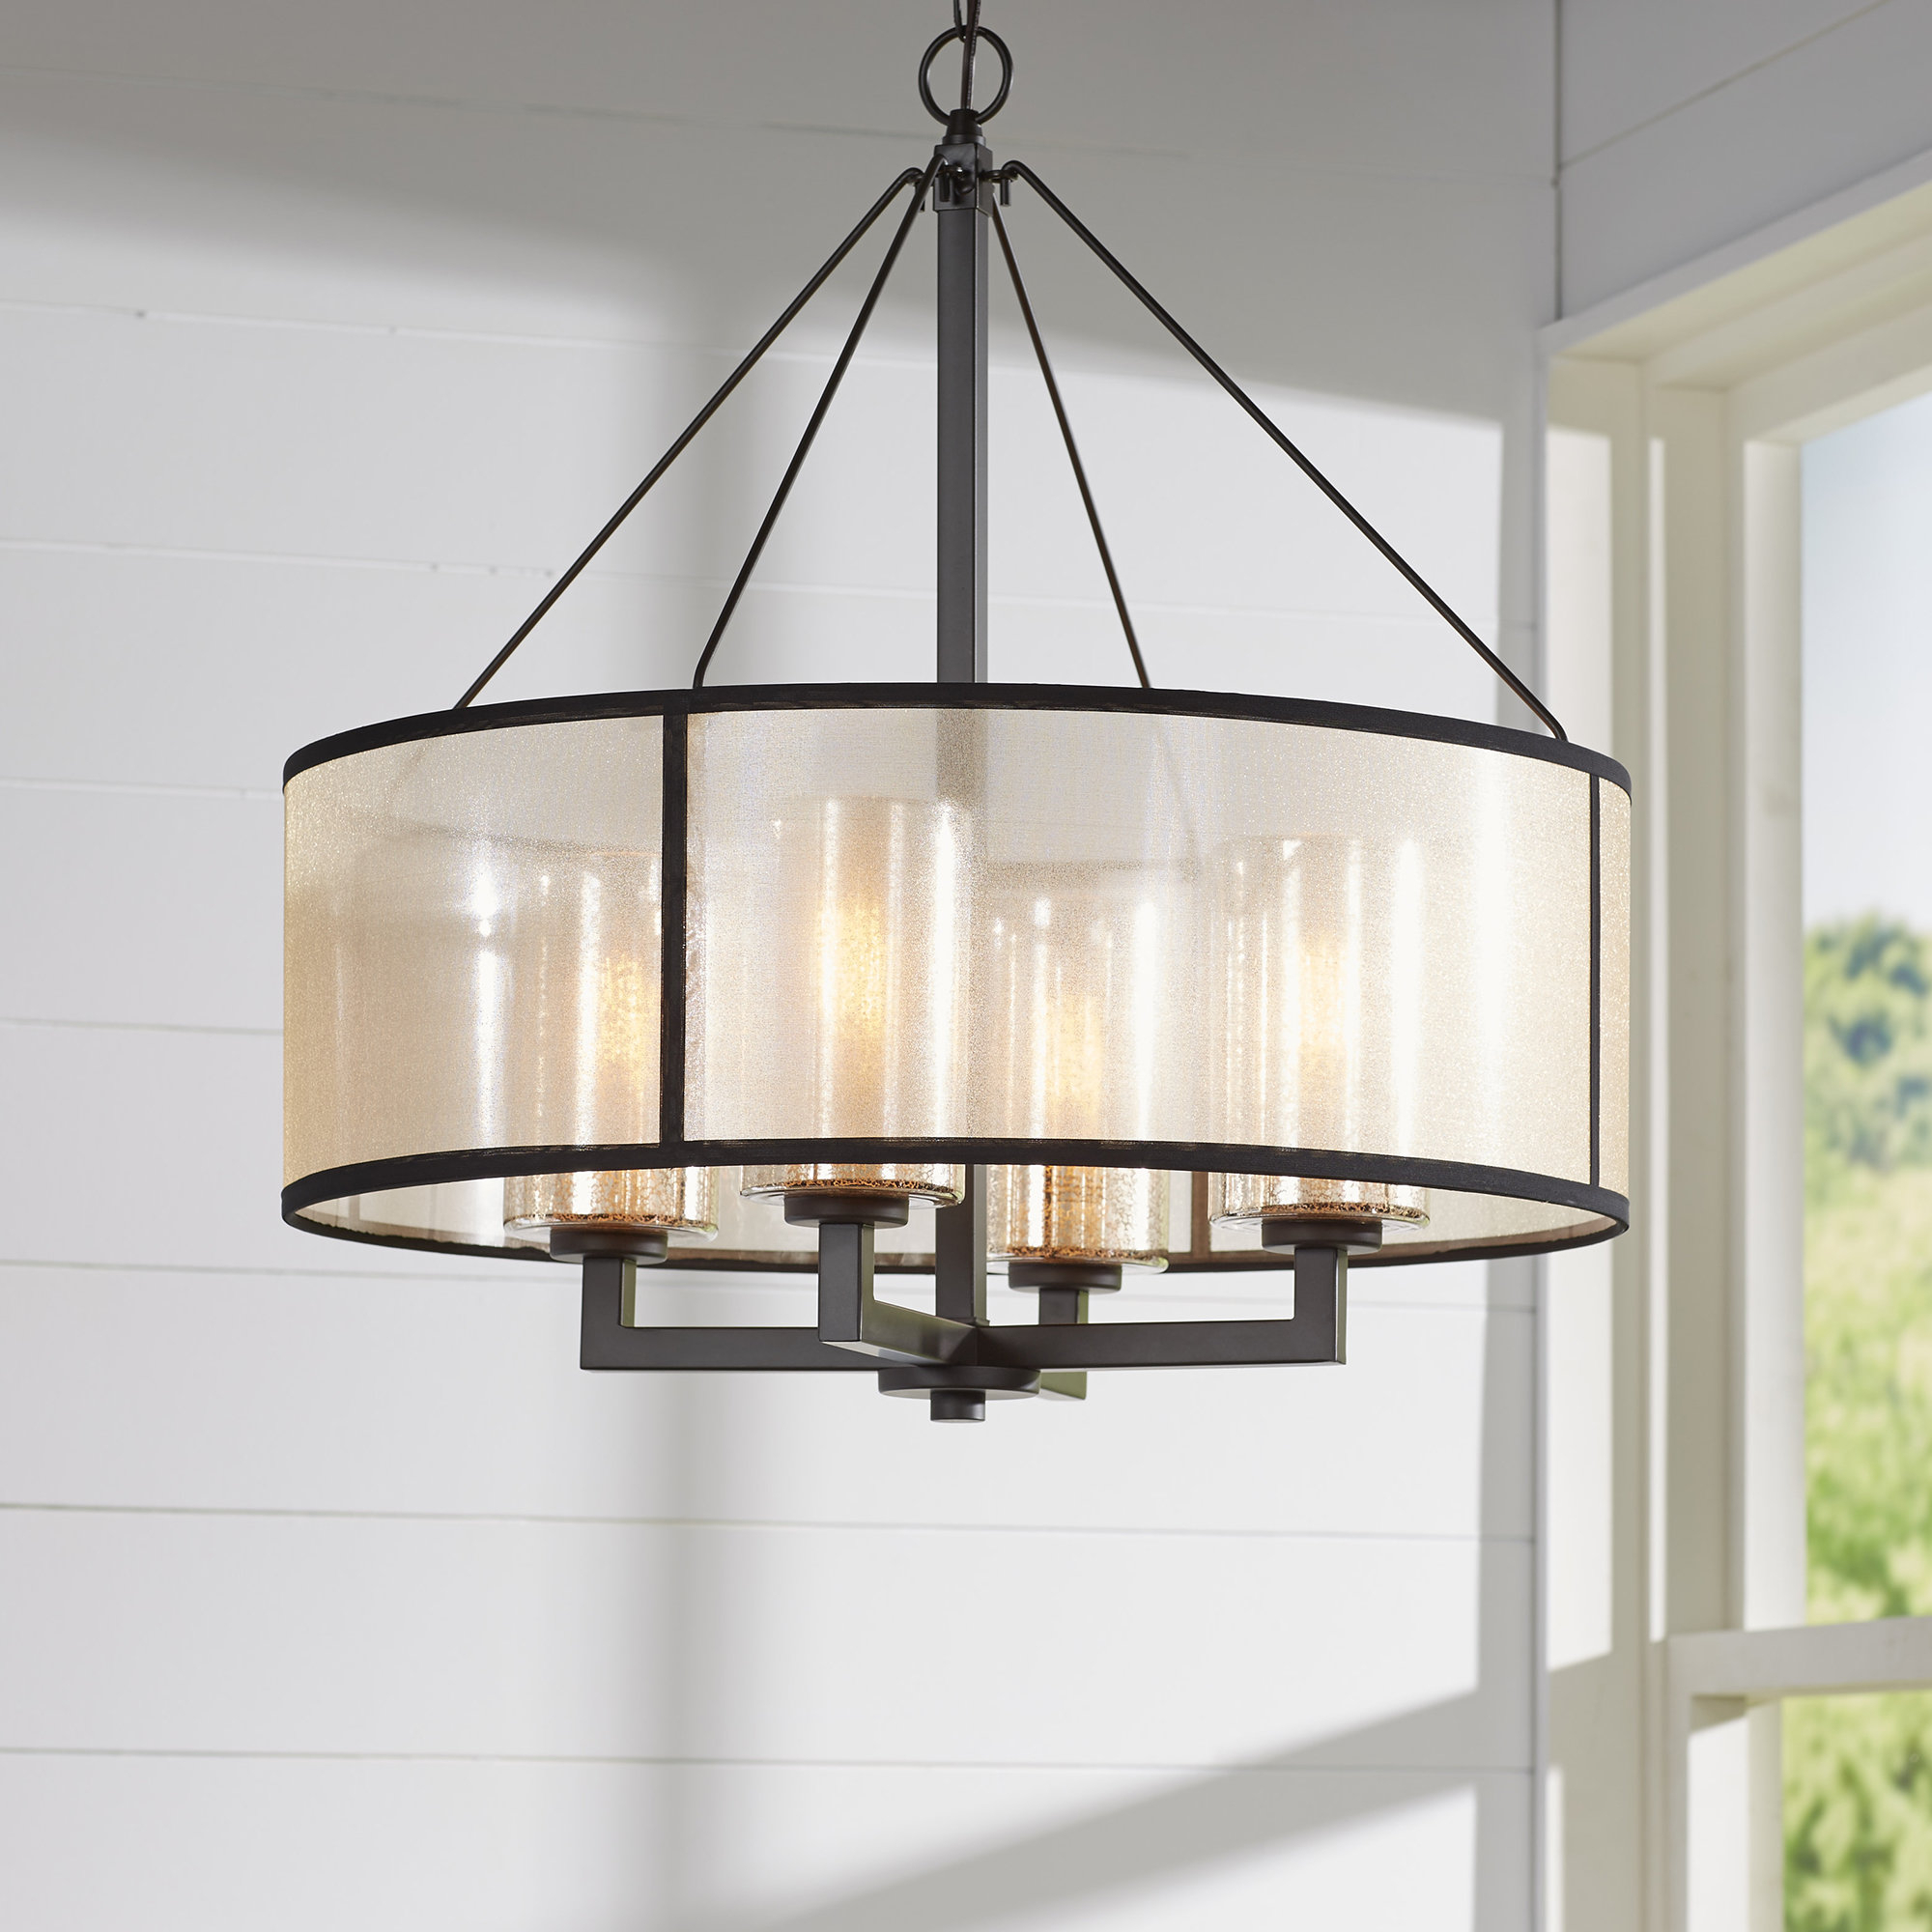 Newest Jill 4-Light Drum Chandeliers intended for Dailey 4-Light Drum Chandelier